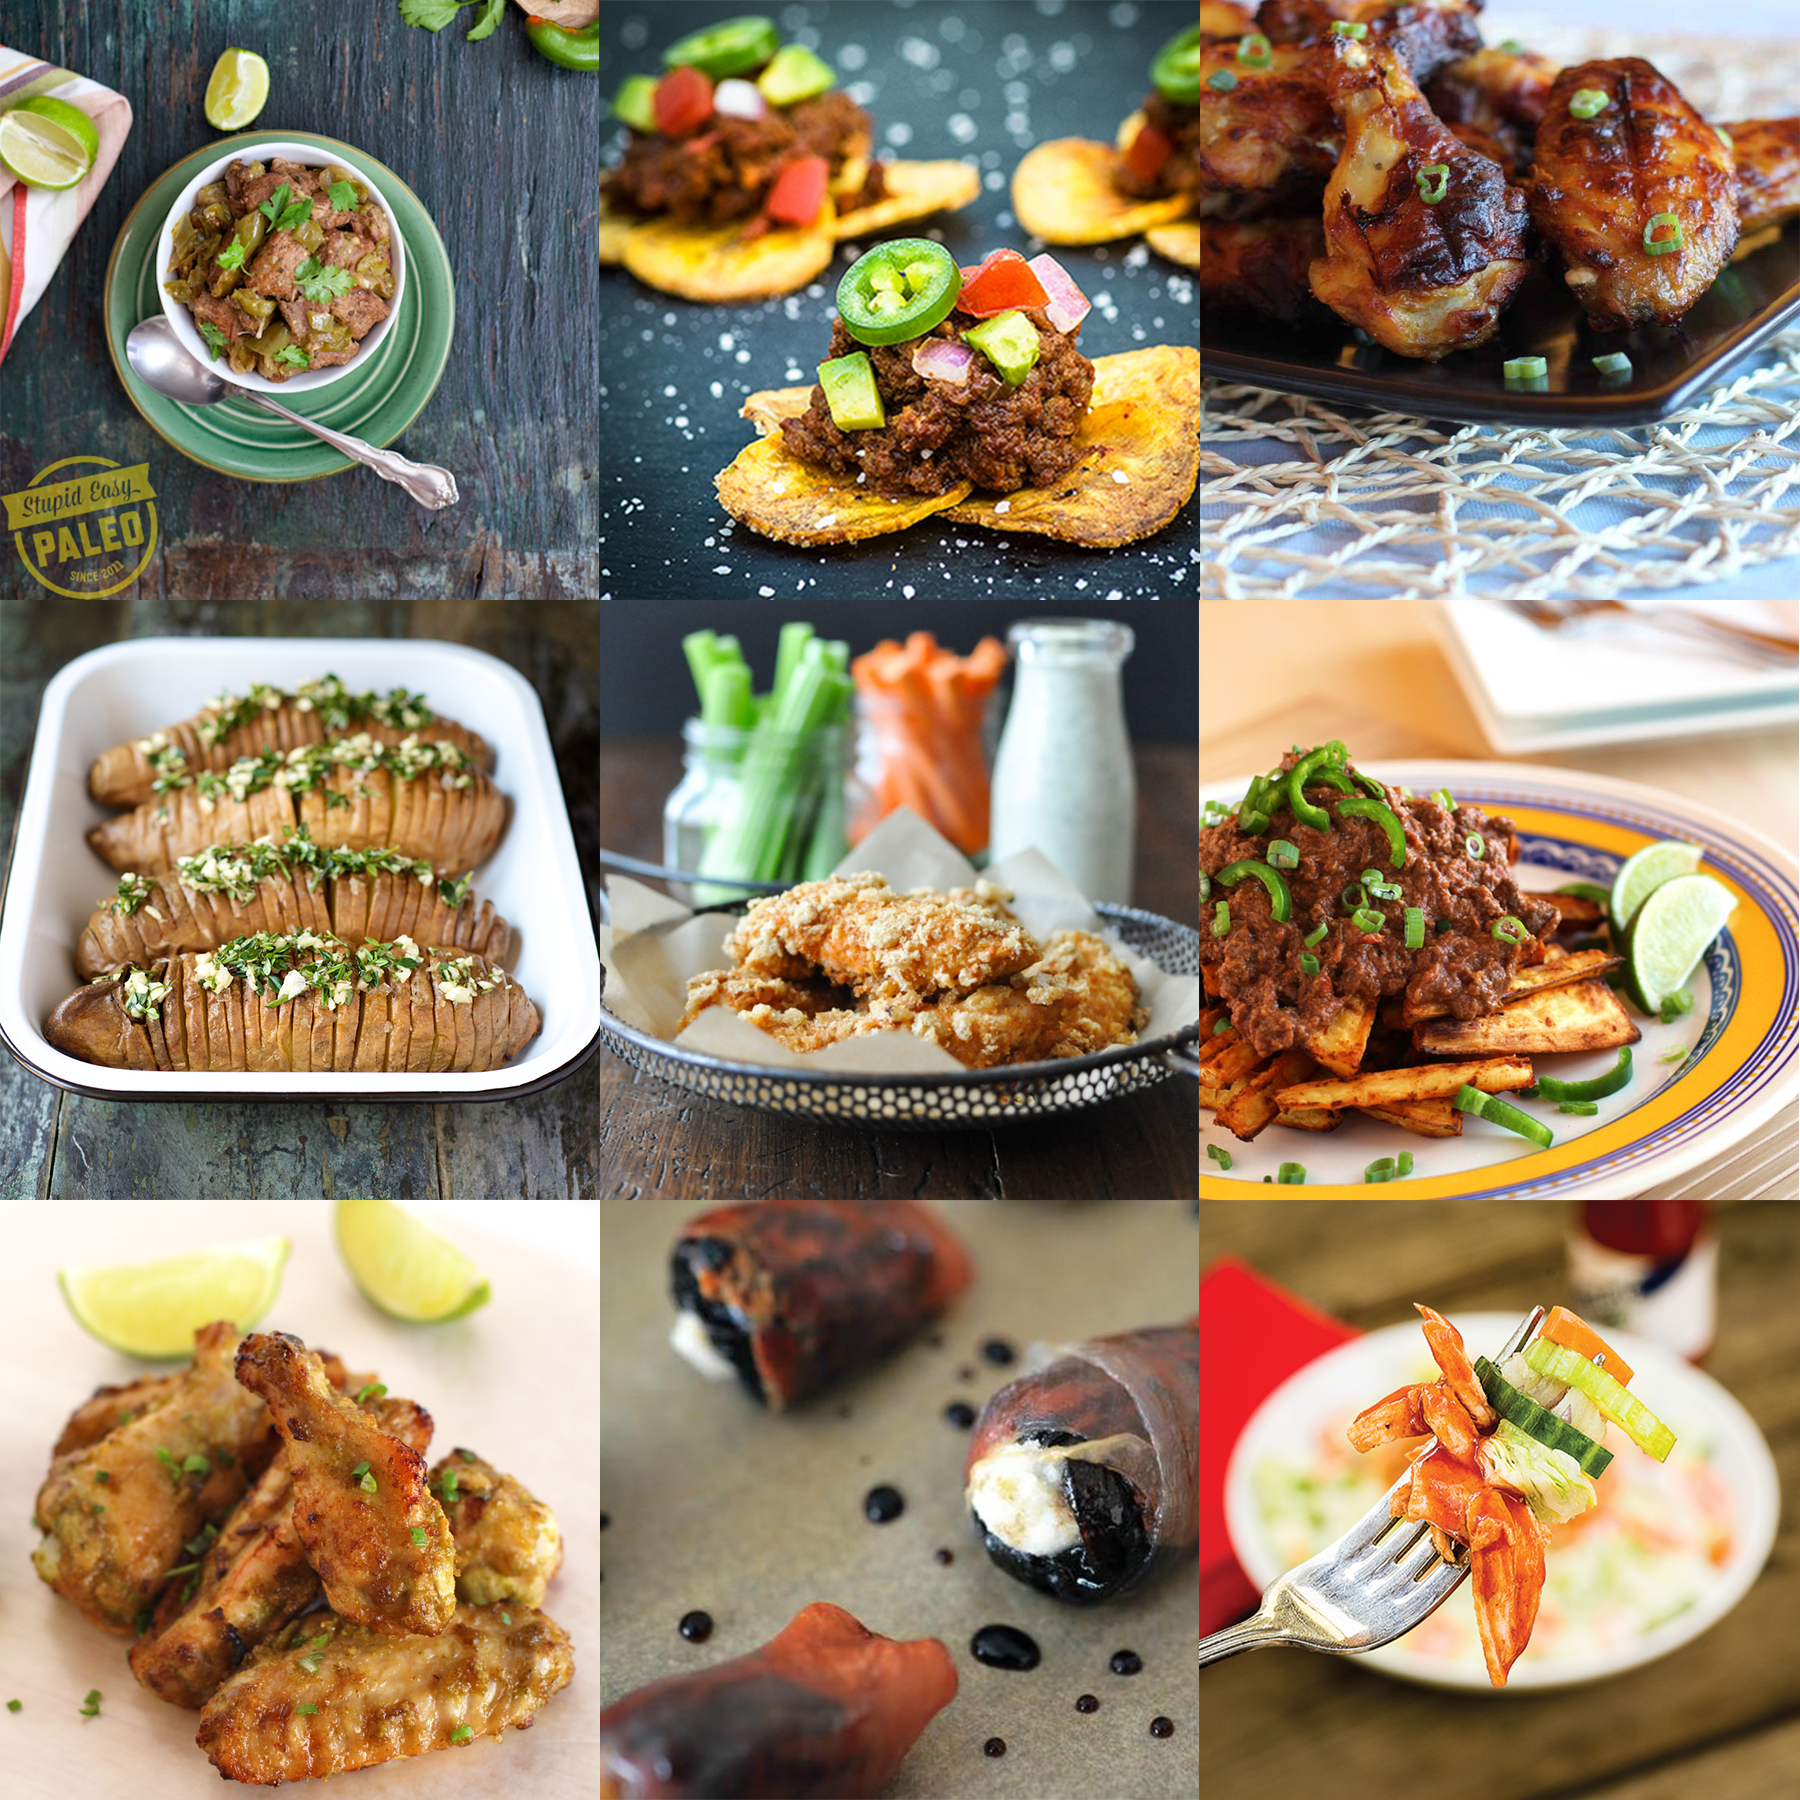 20 paleo super bowl recipes stupid easy paleo get your game day eats on with 20 of the best paleo super bowl recipes forumfinder Image collections